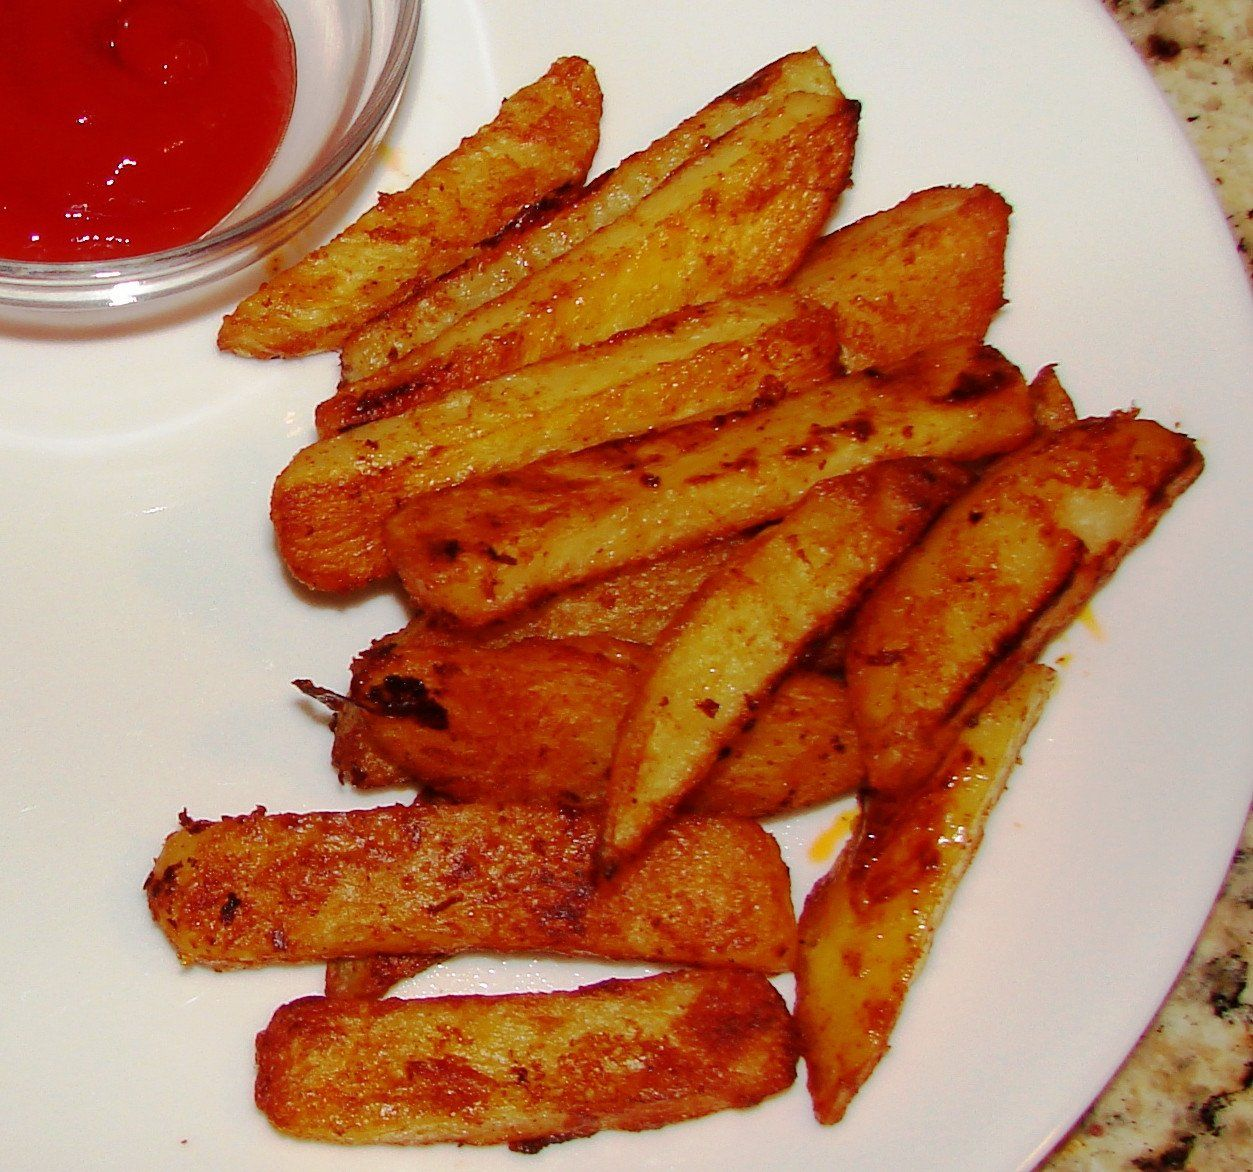 Chugwater Chili Seasoned Oven Fries